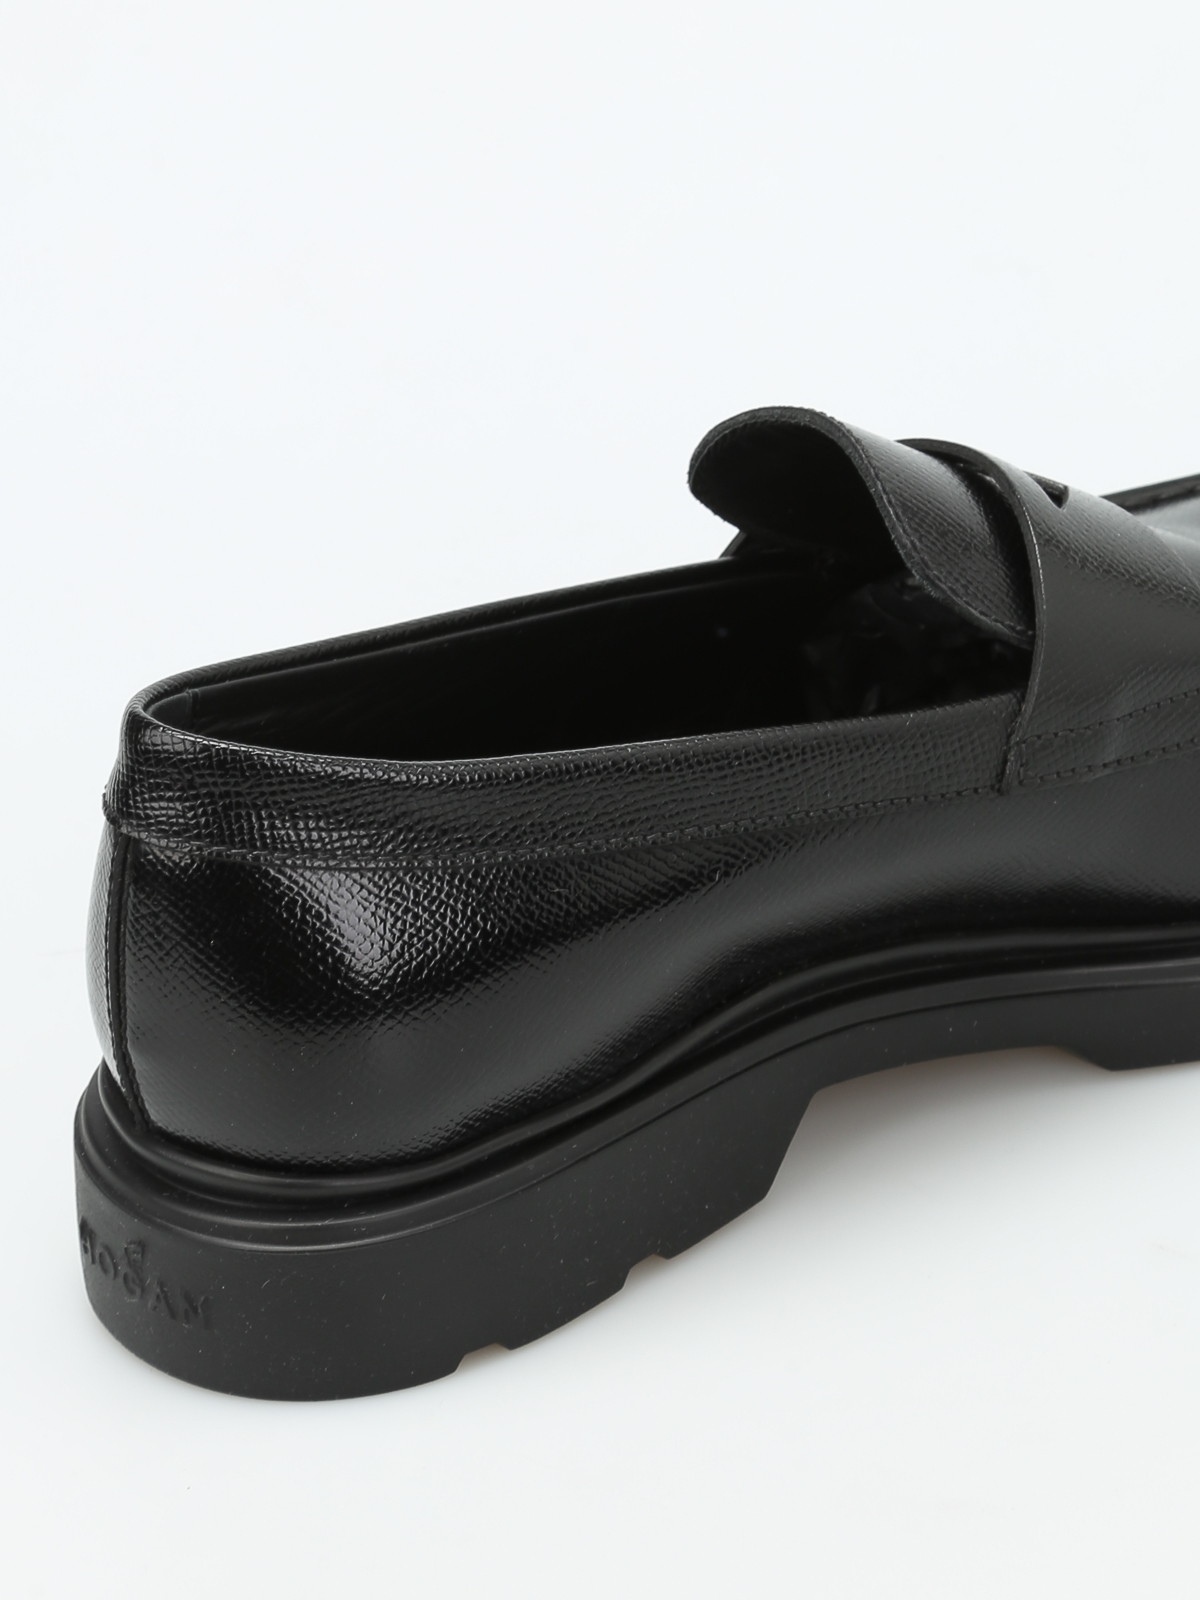 Loafers & Slippers Hogan - H304 New Route loafers - HXM3040X230FFPB999